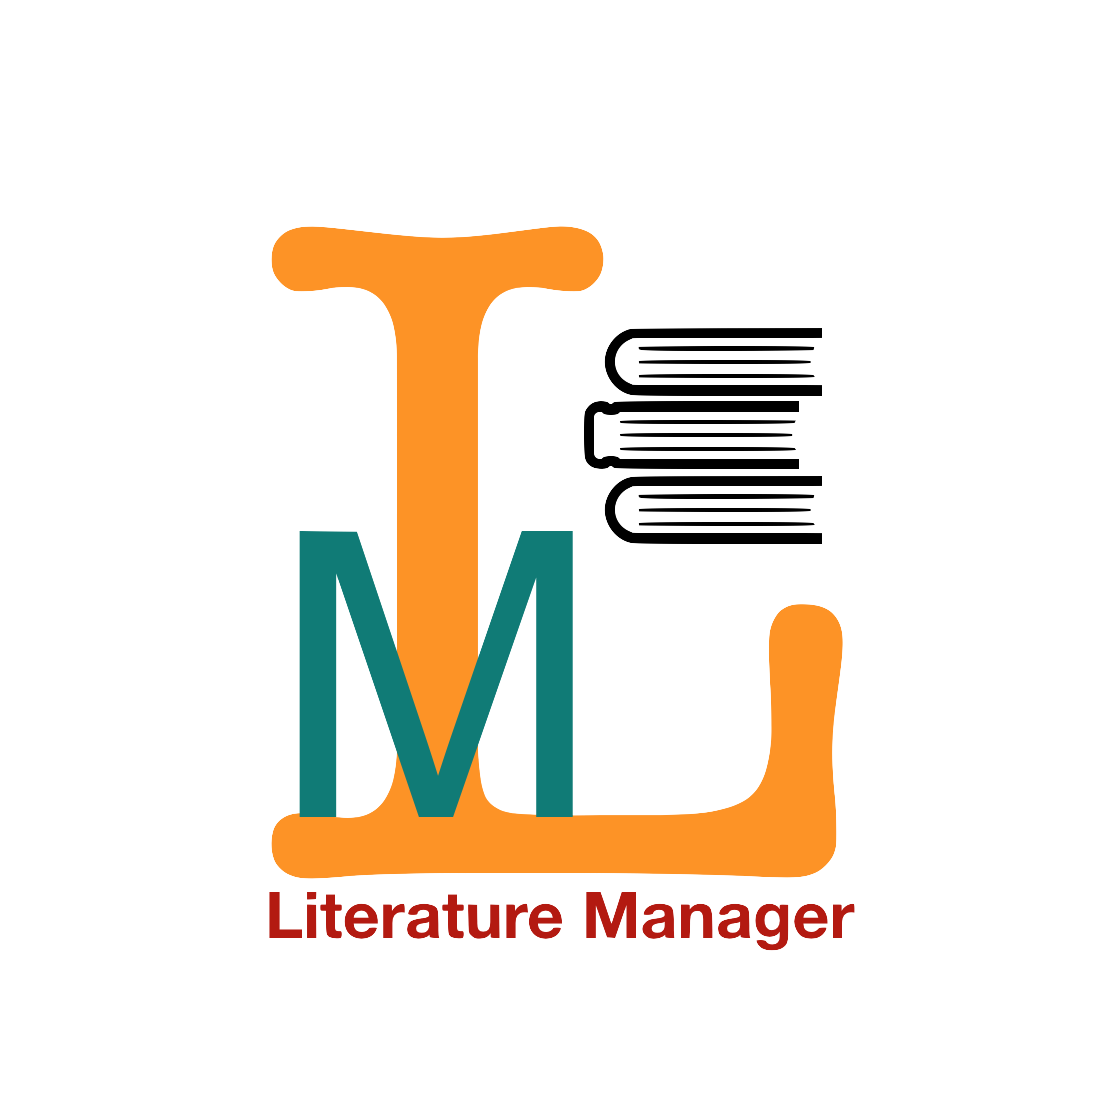 literature manager logo not found